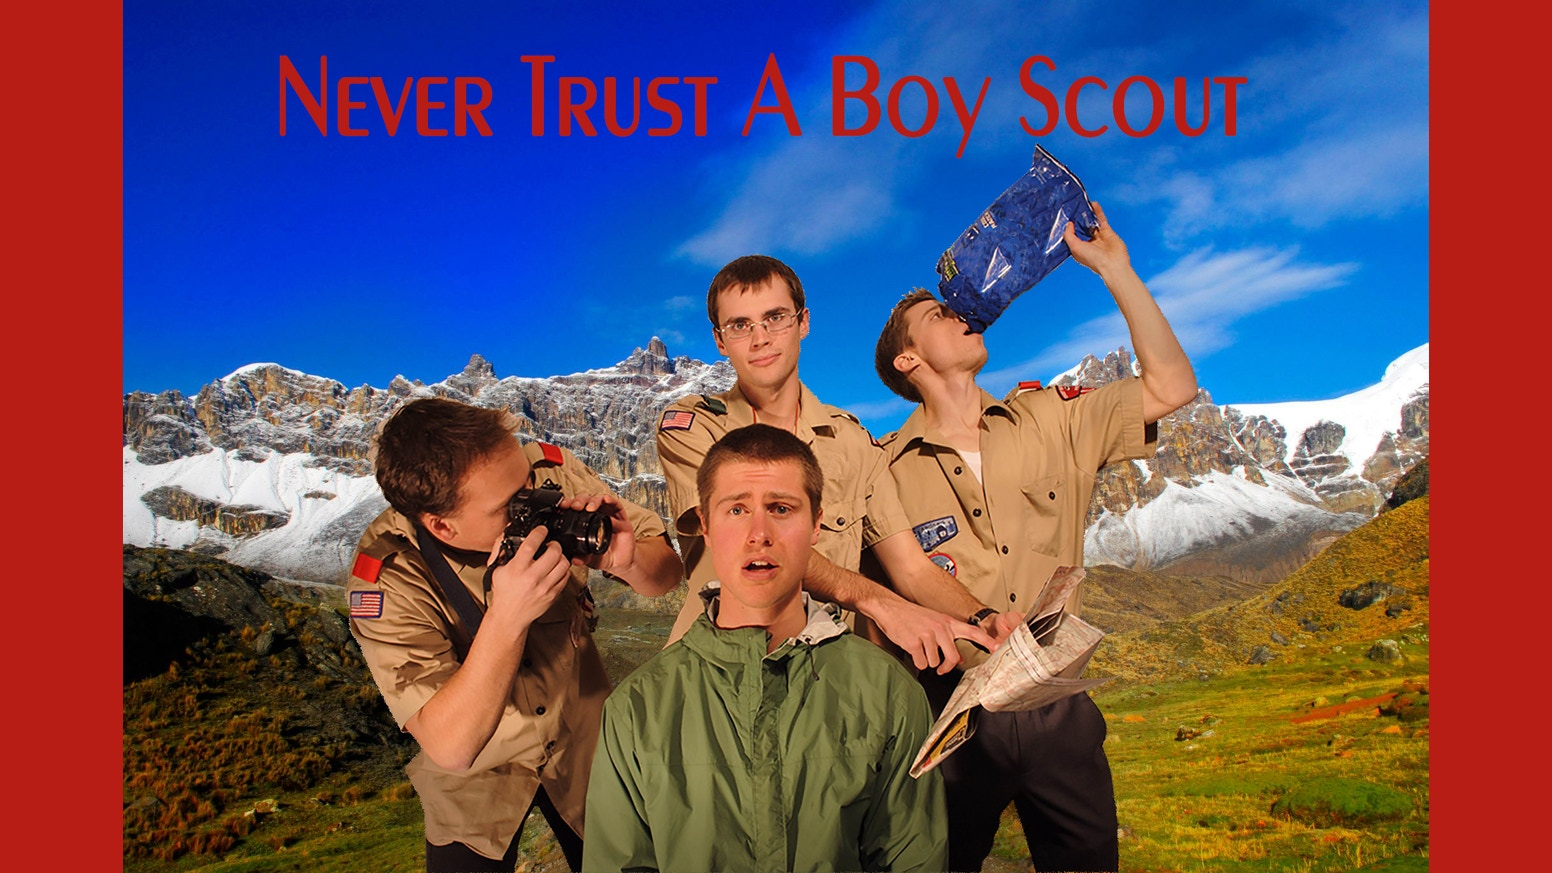 never trust a boy scout an essay collection by nate garberich essays on traveling cycling hiking and the existential crisis that is postgraduate life